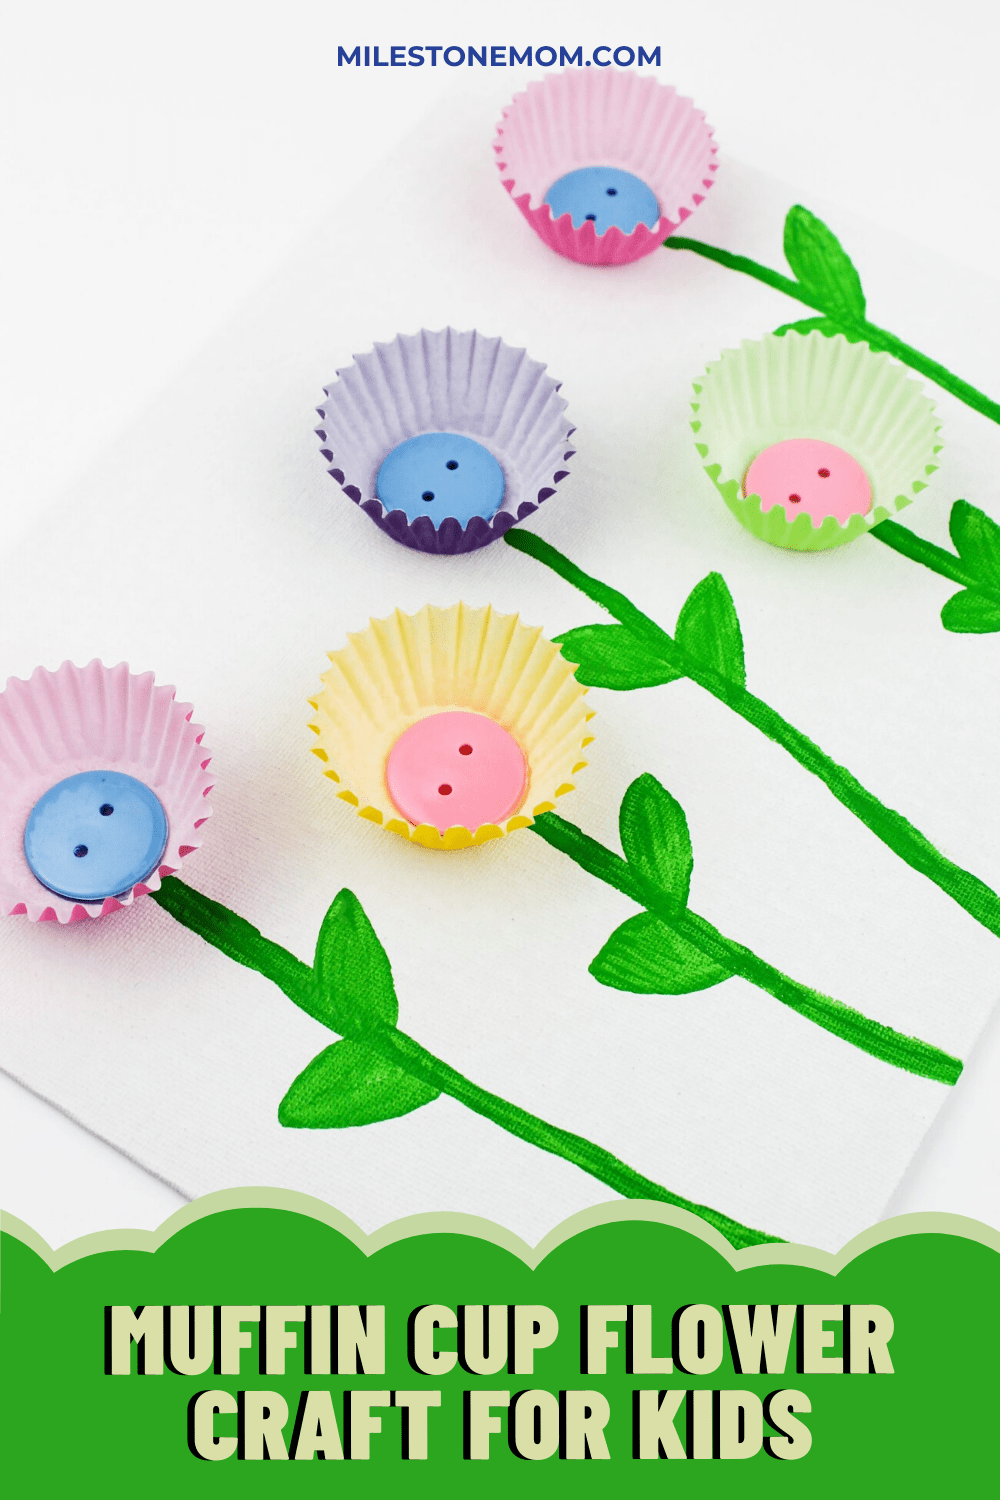 Milestone Mom - Muffin Cup Flower Craft For Kids